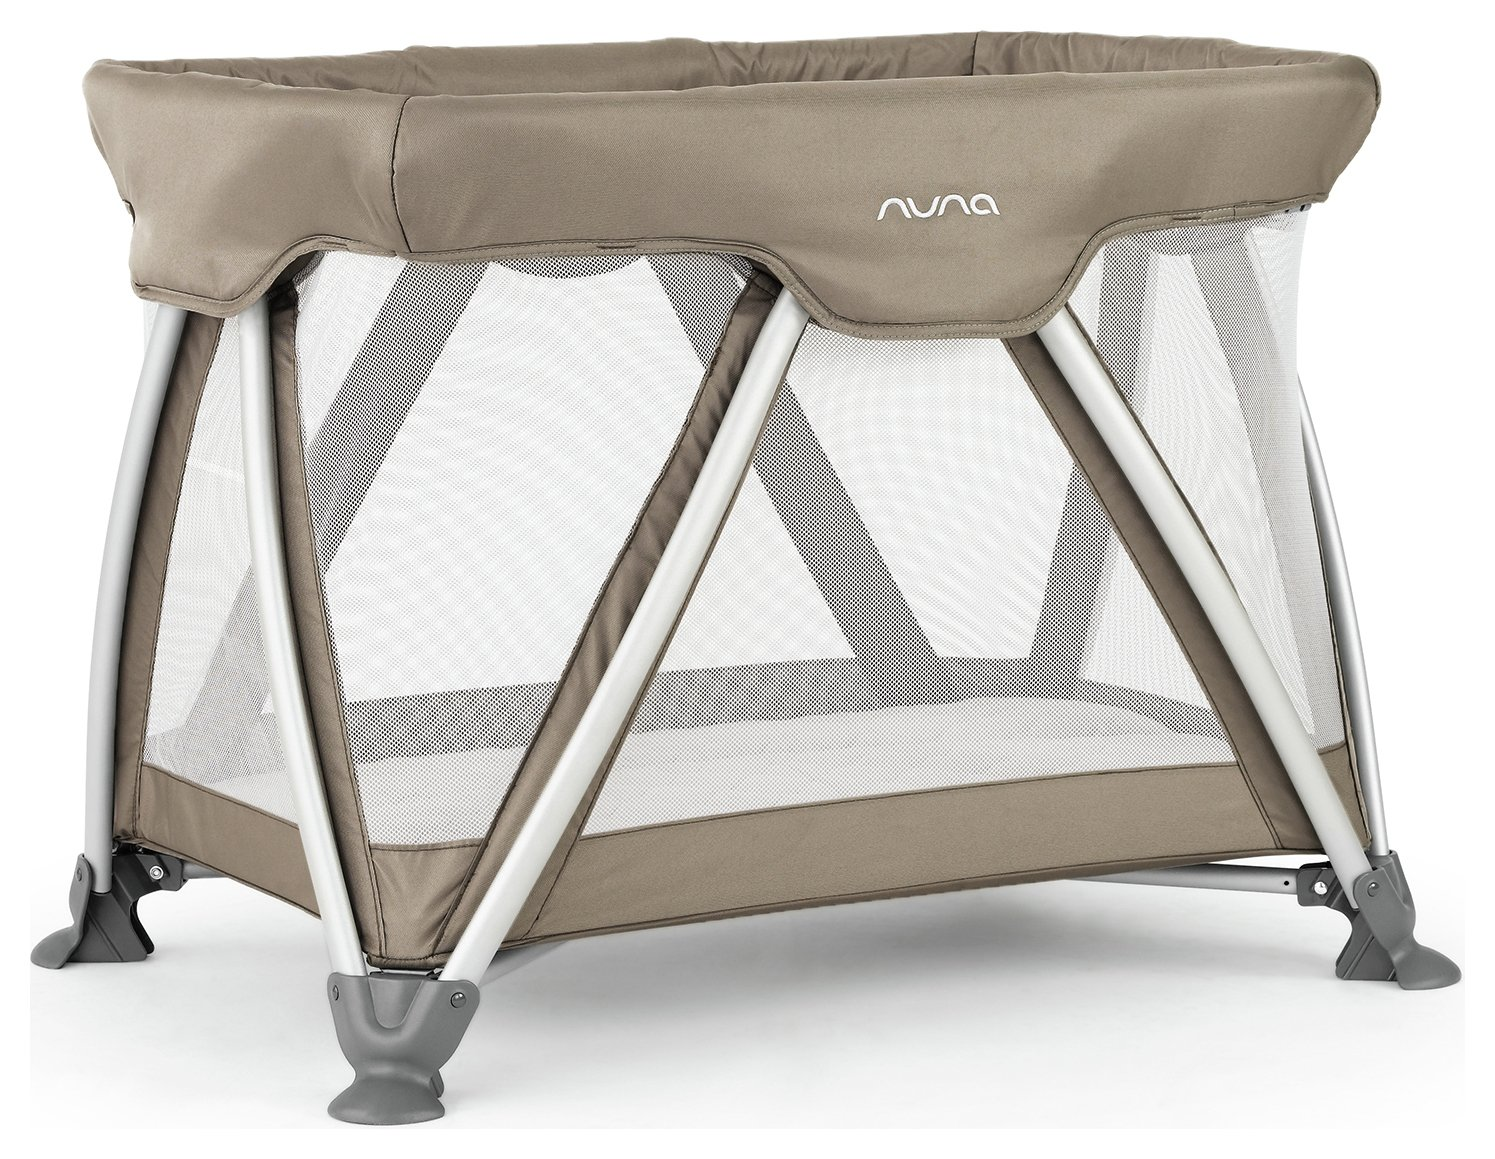 Nuna Sena Mini Travel Cot - Safari.